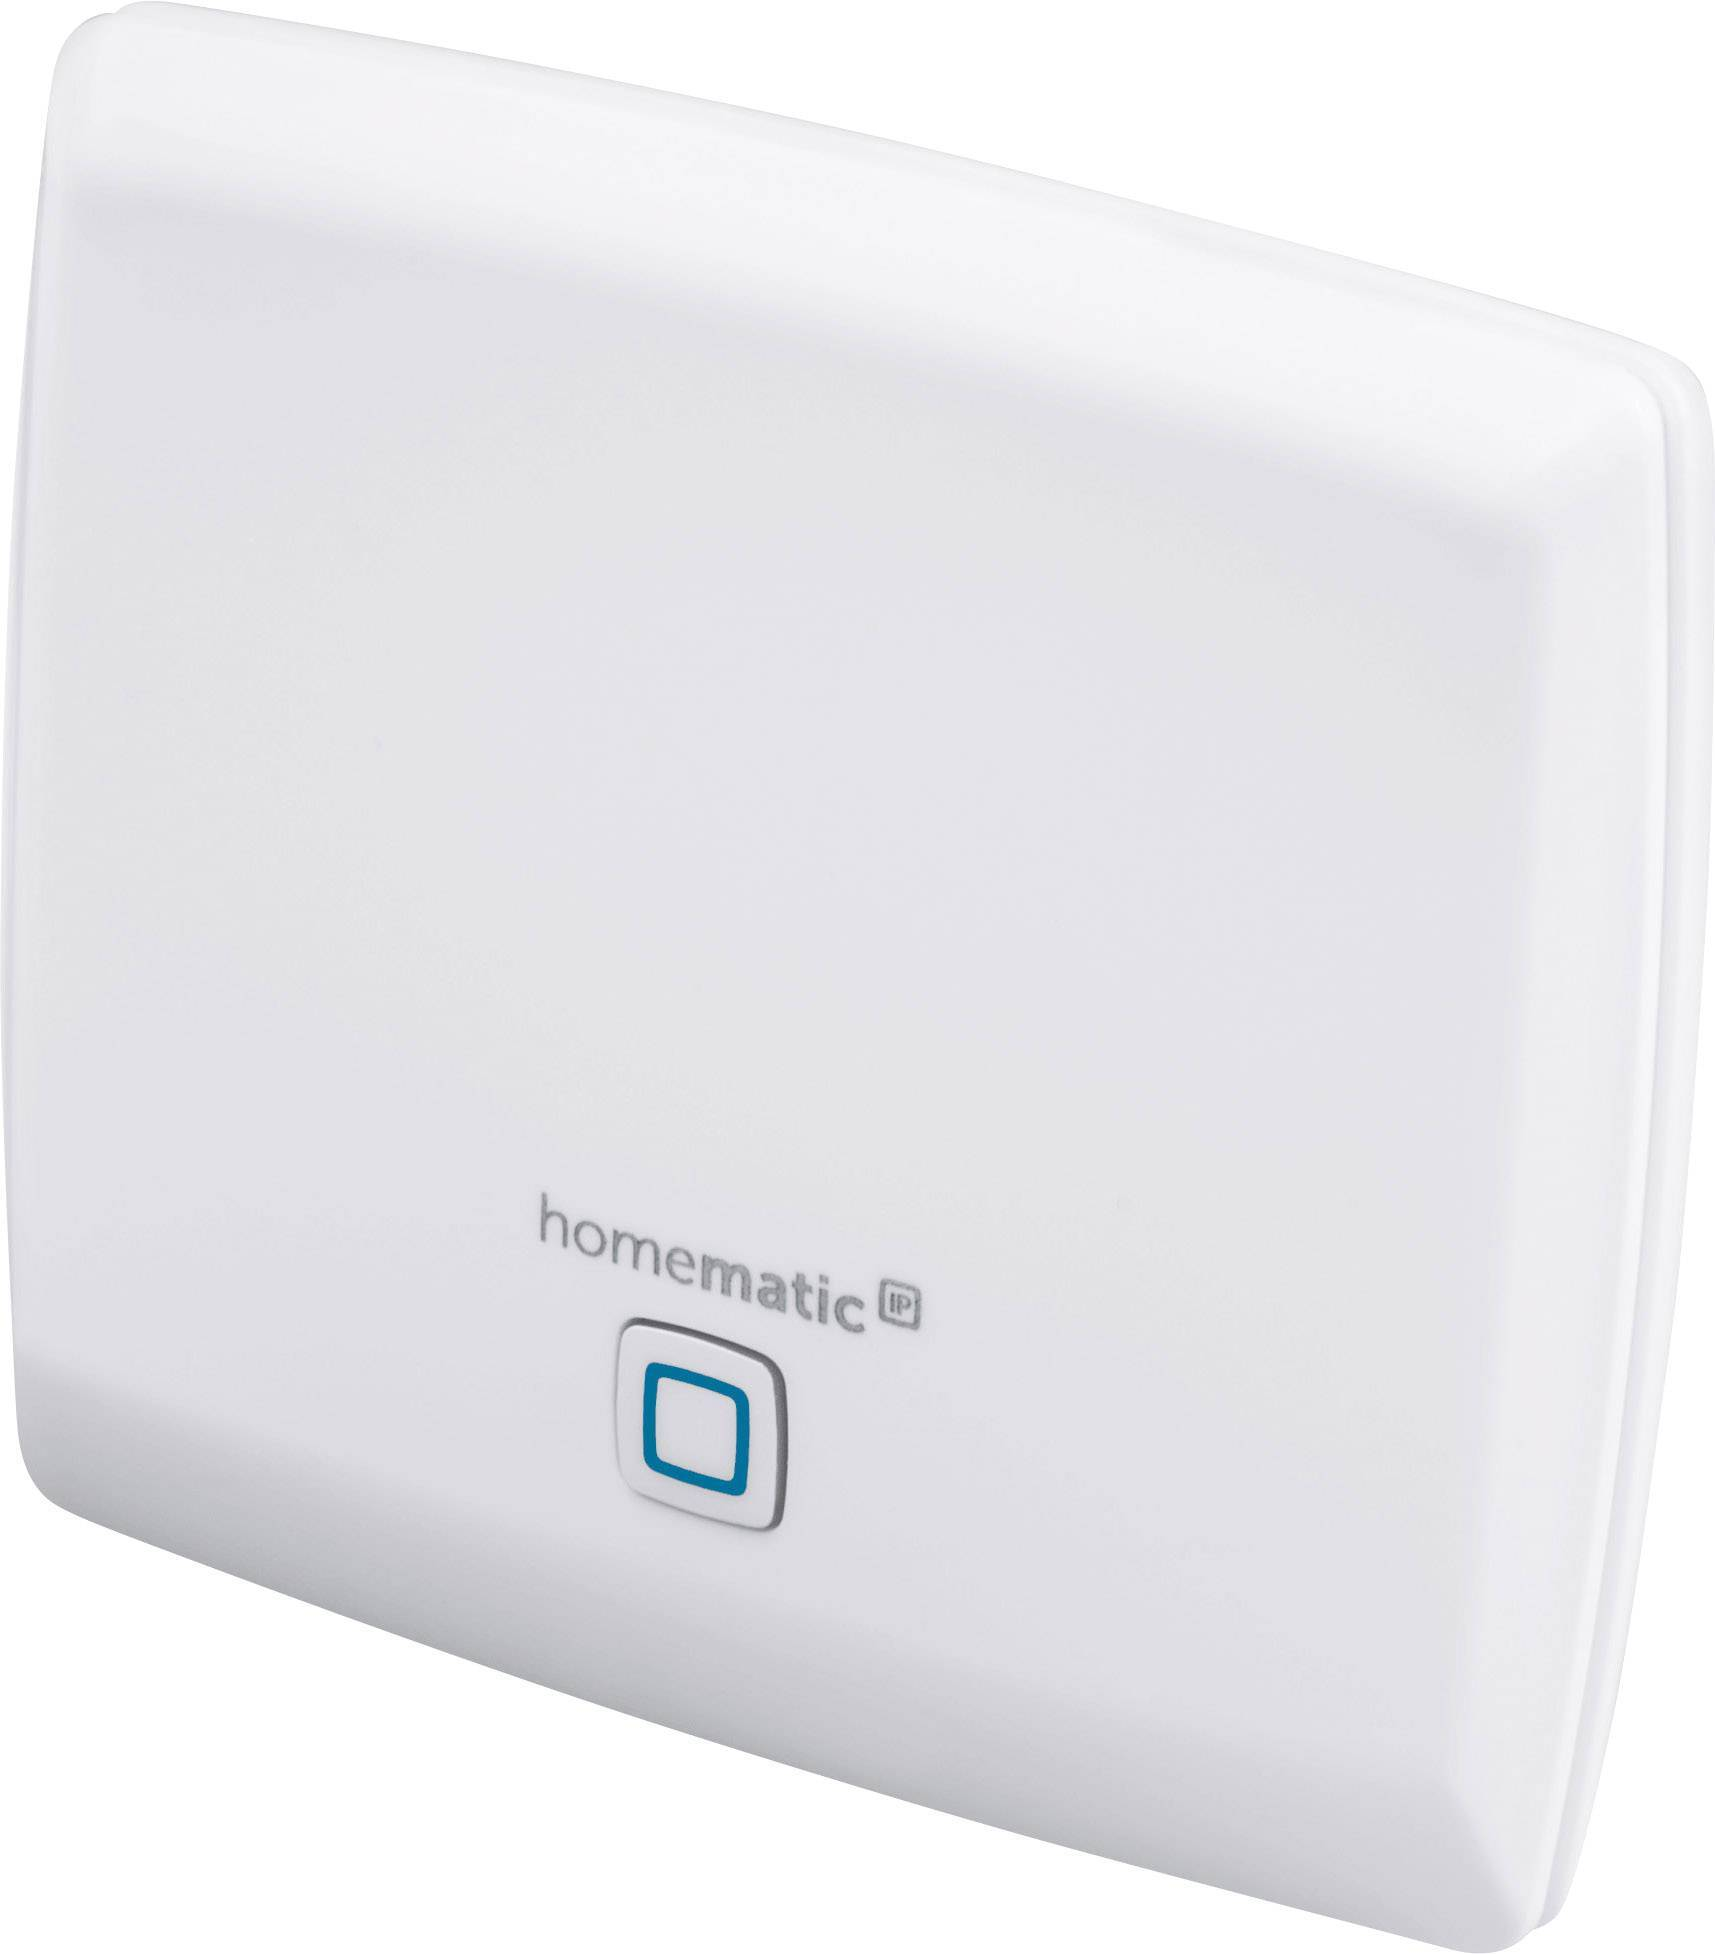 Homematic Centrale sans fil gamme Homematic IP Access Point - Homematic Ip